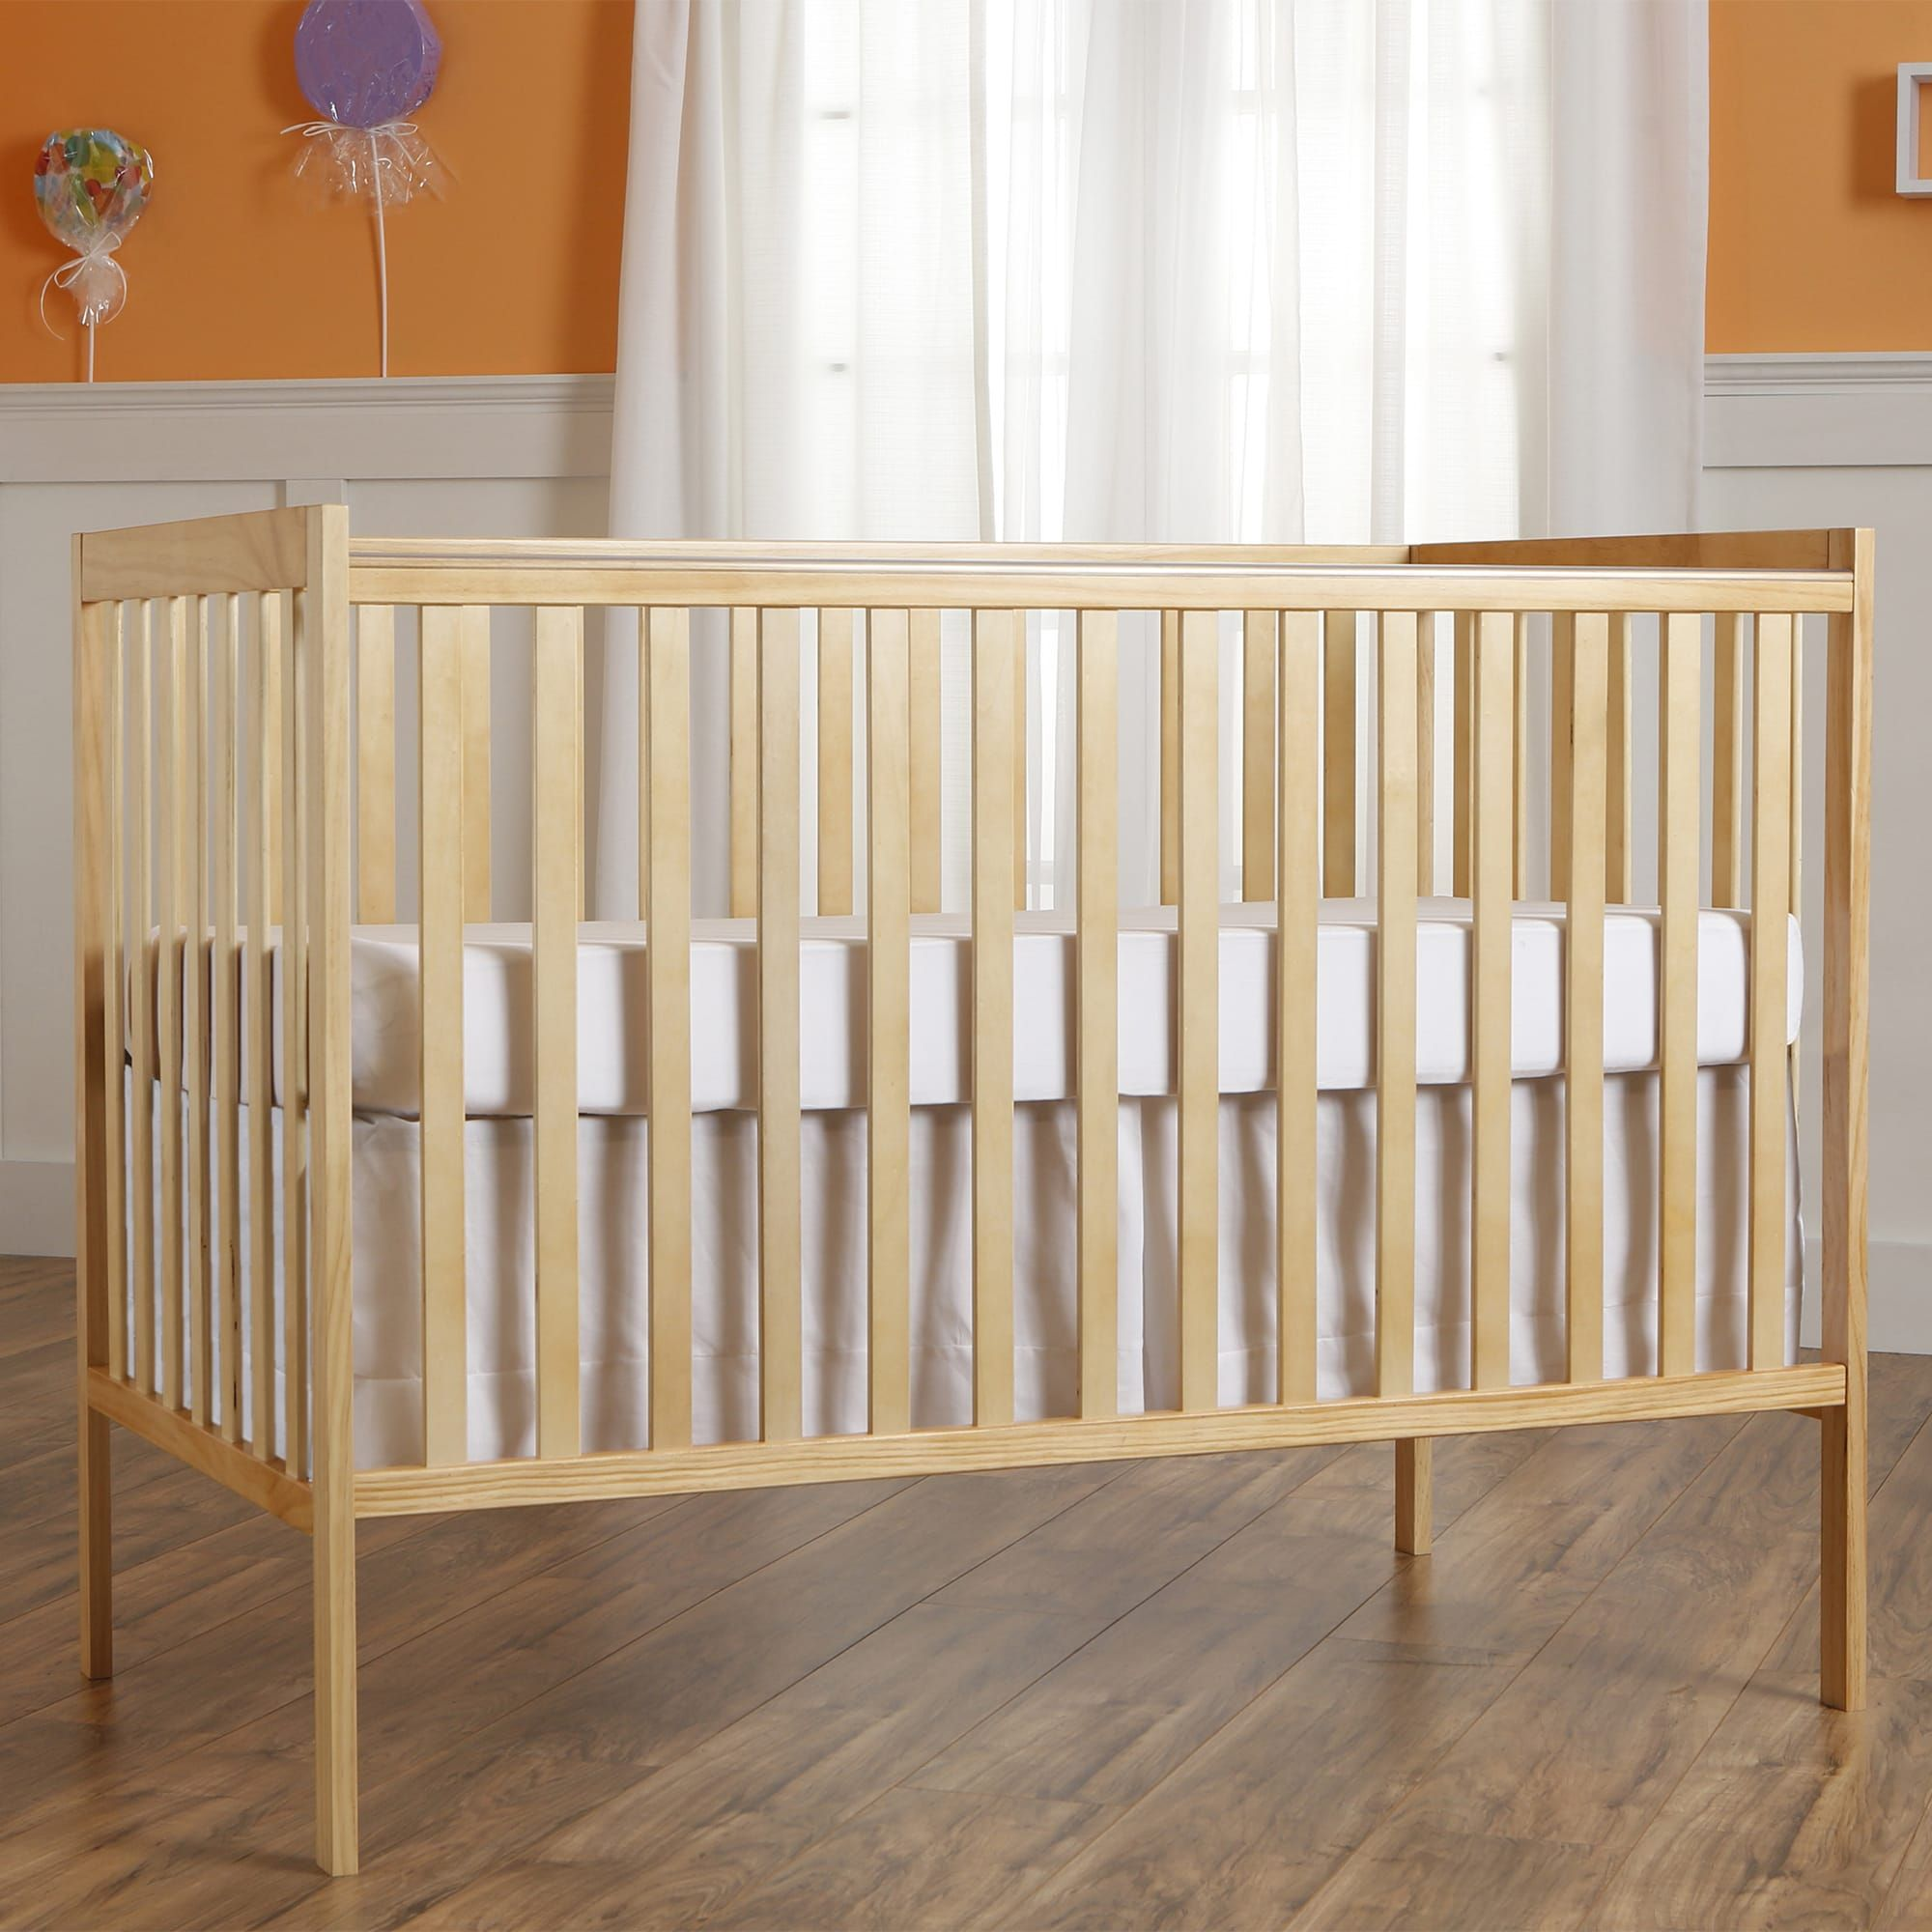 Online Shopping Bedding Furniture Electronics Jewelry Clothing More Cribs Convertible Crib Furniture Deals